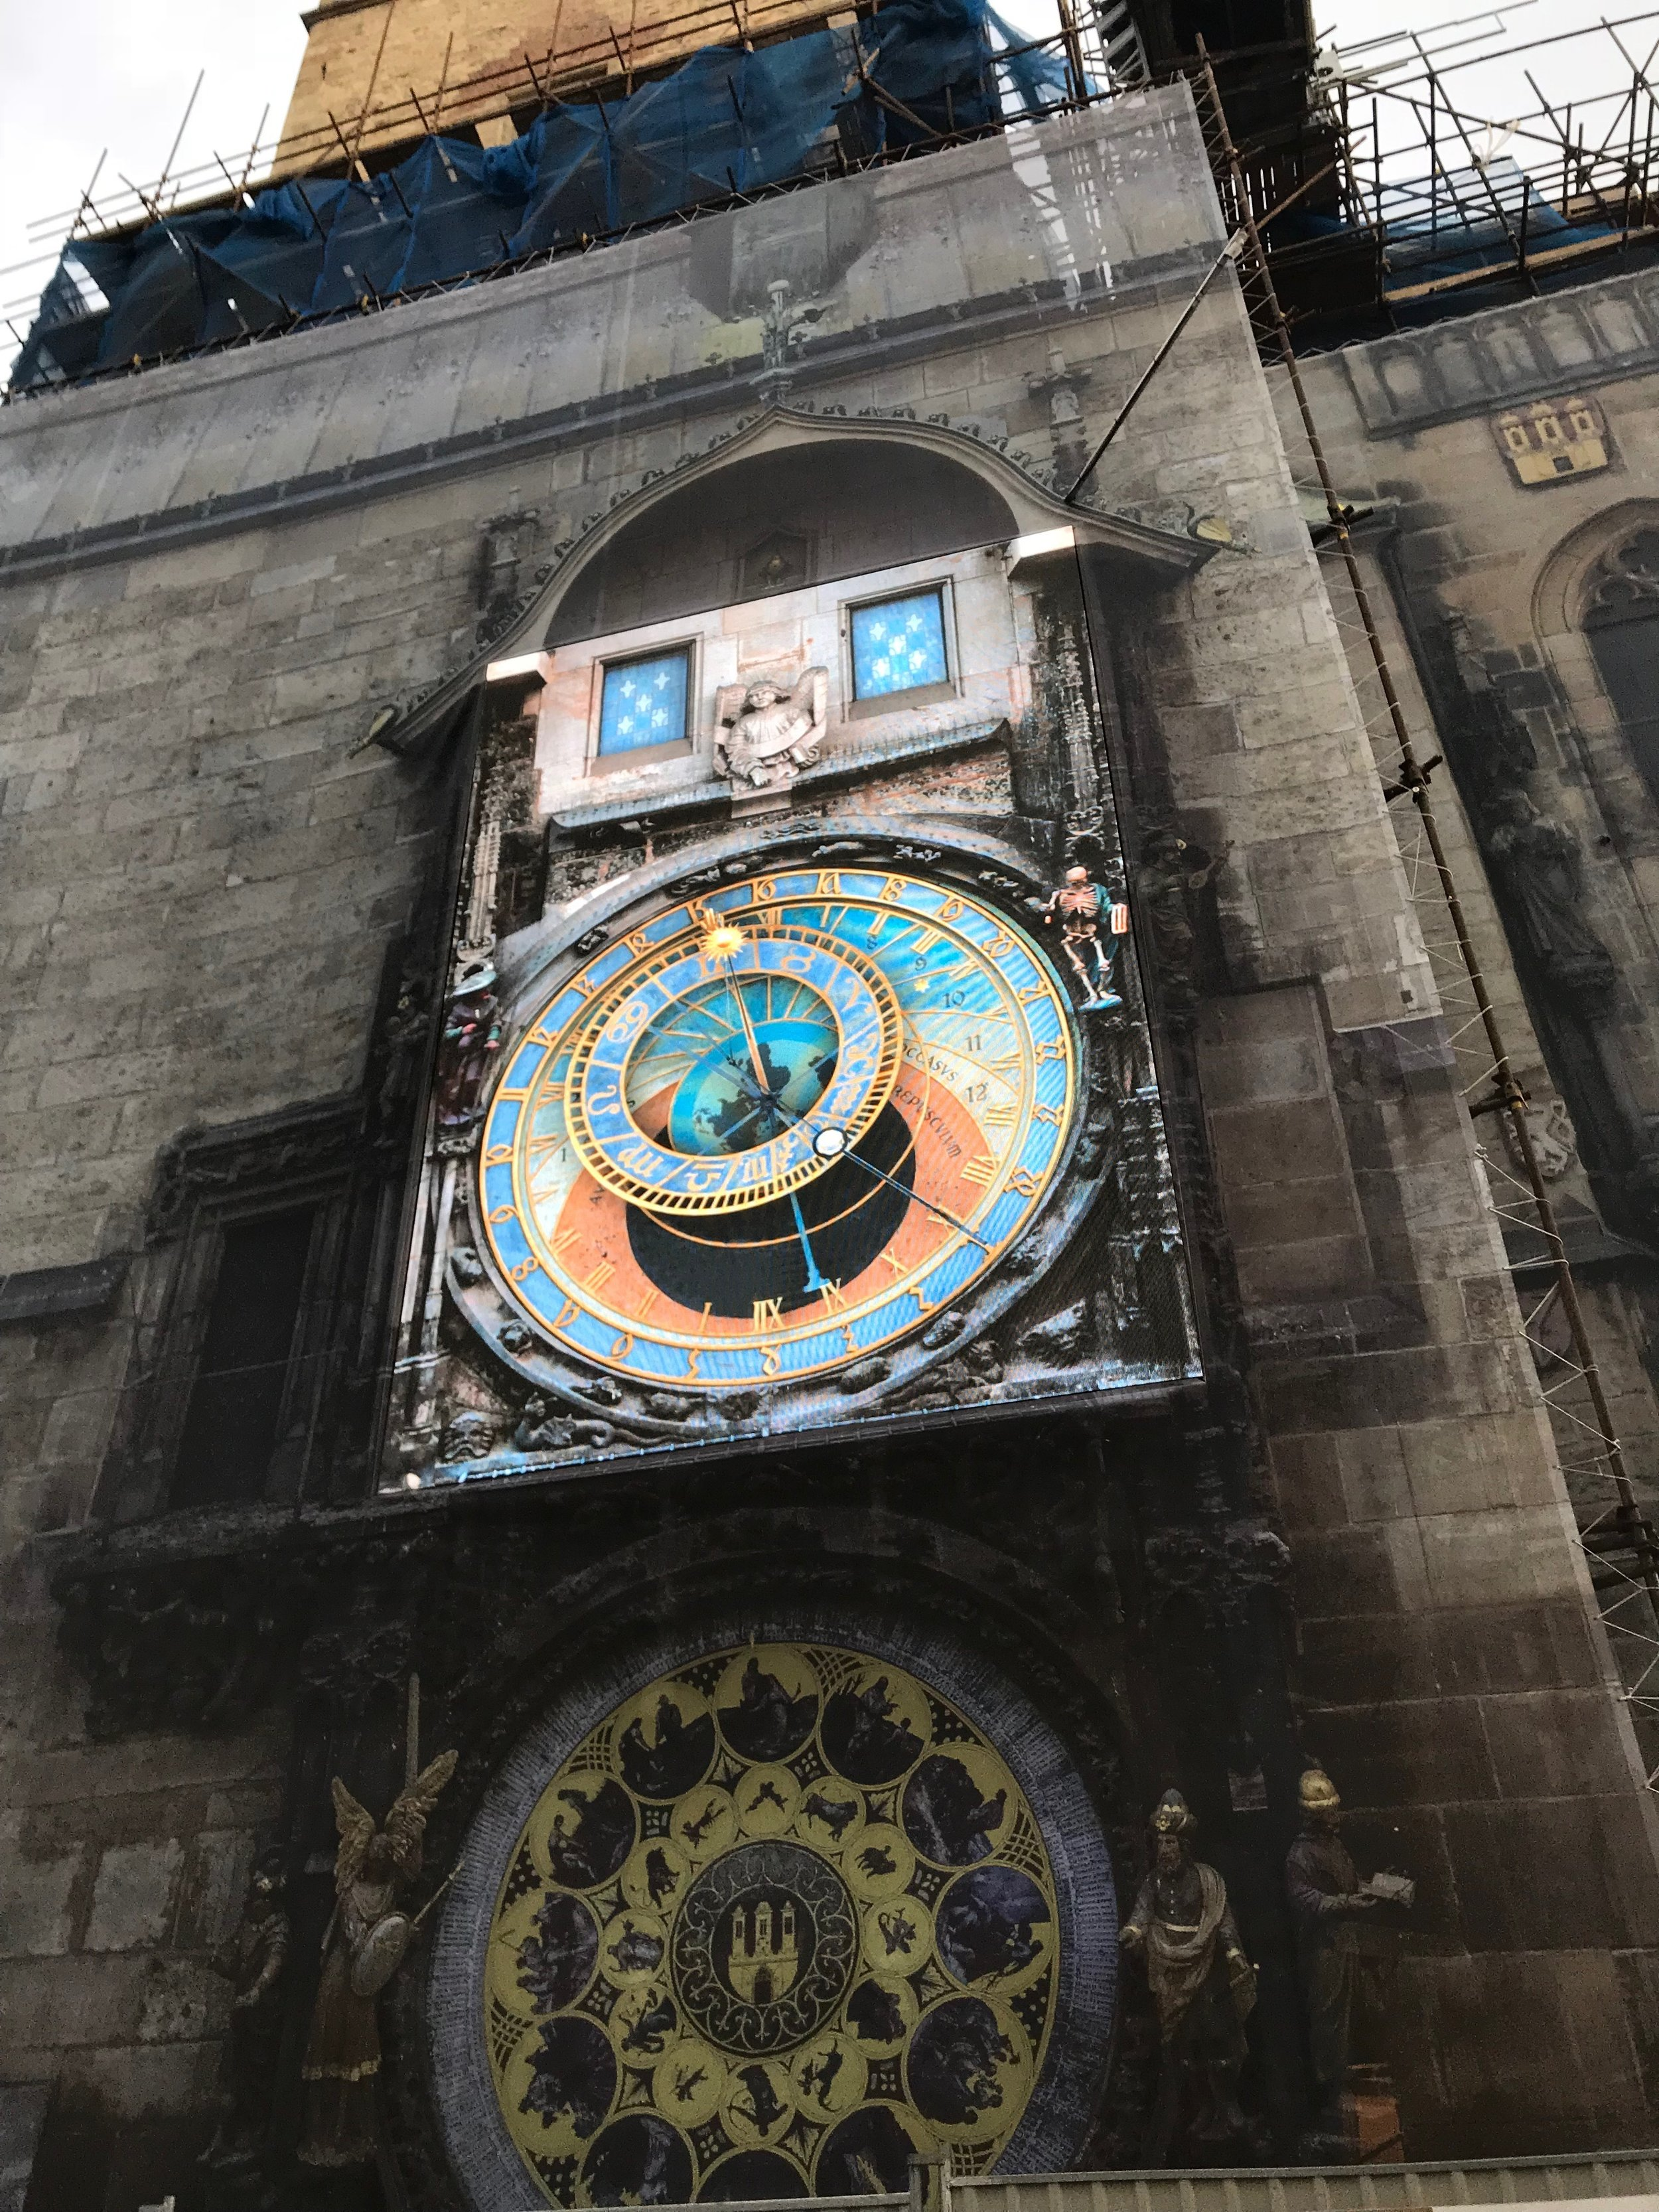 In November, they were restoring the clock. It was the 1st of June and the situation was still the same. And, according to the official website of Prague, the clock will not be able to offer her beauty until October 2018.